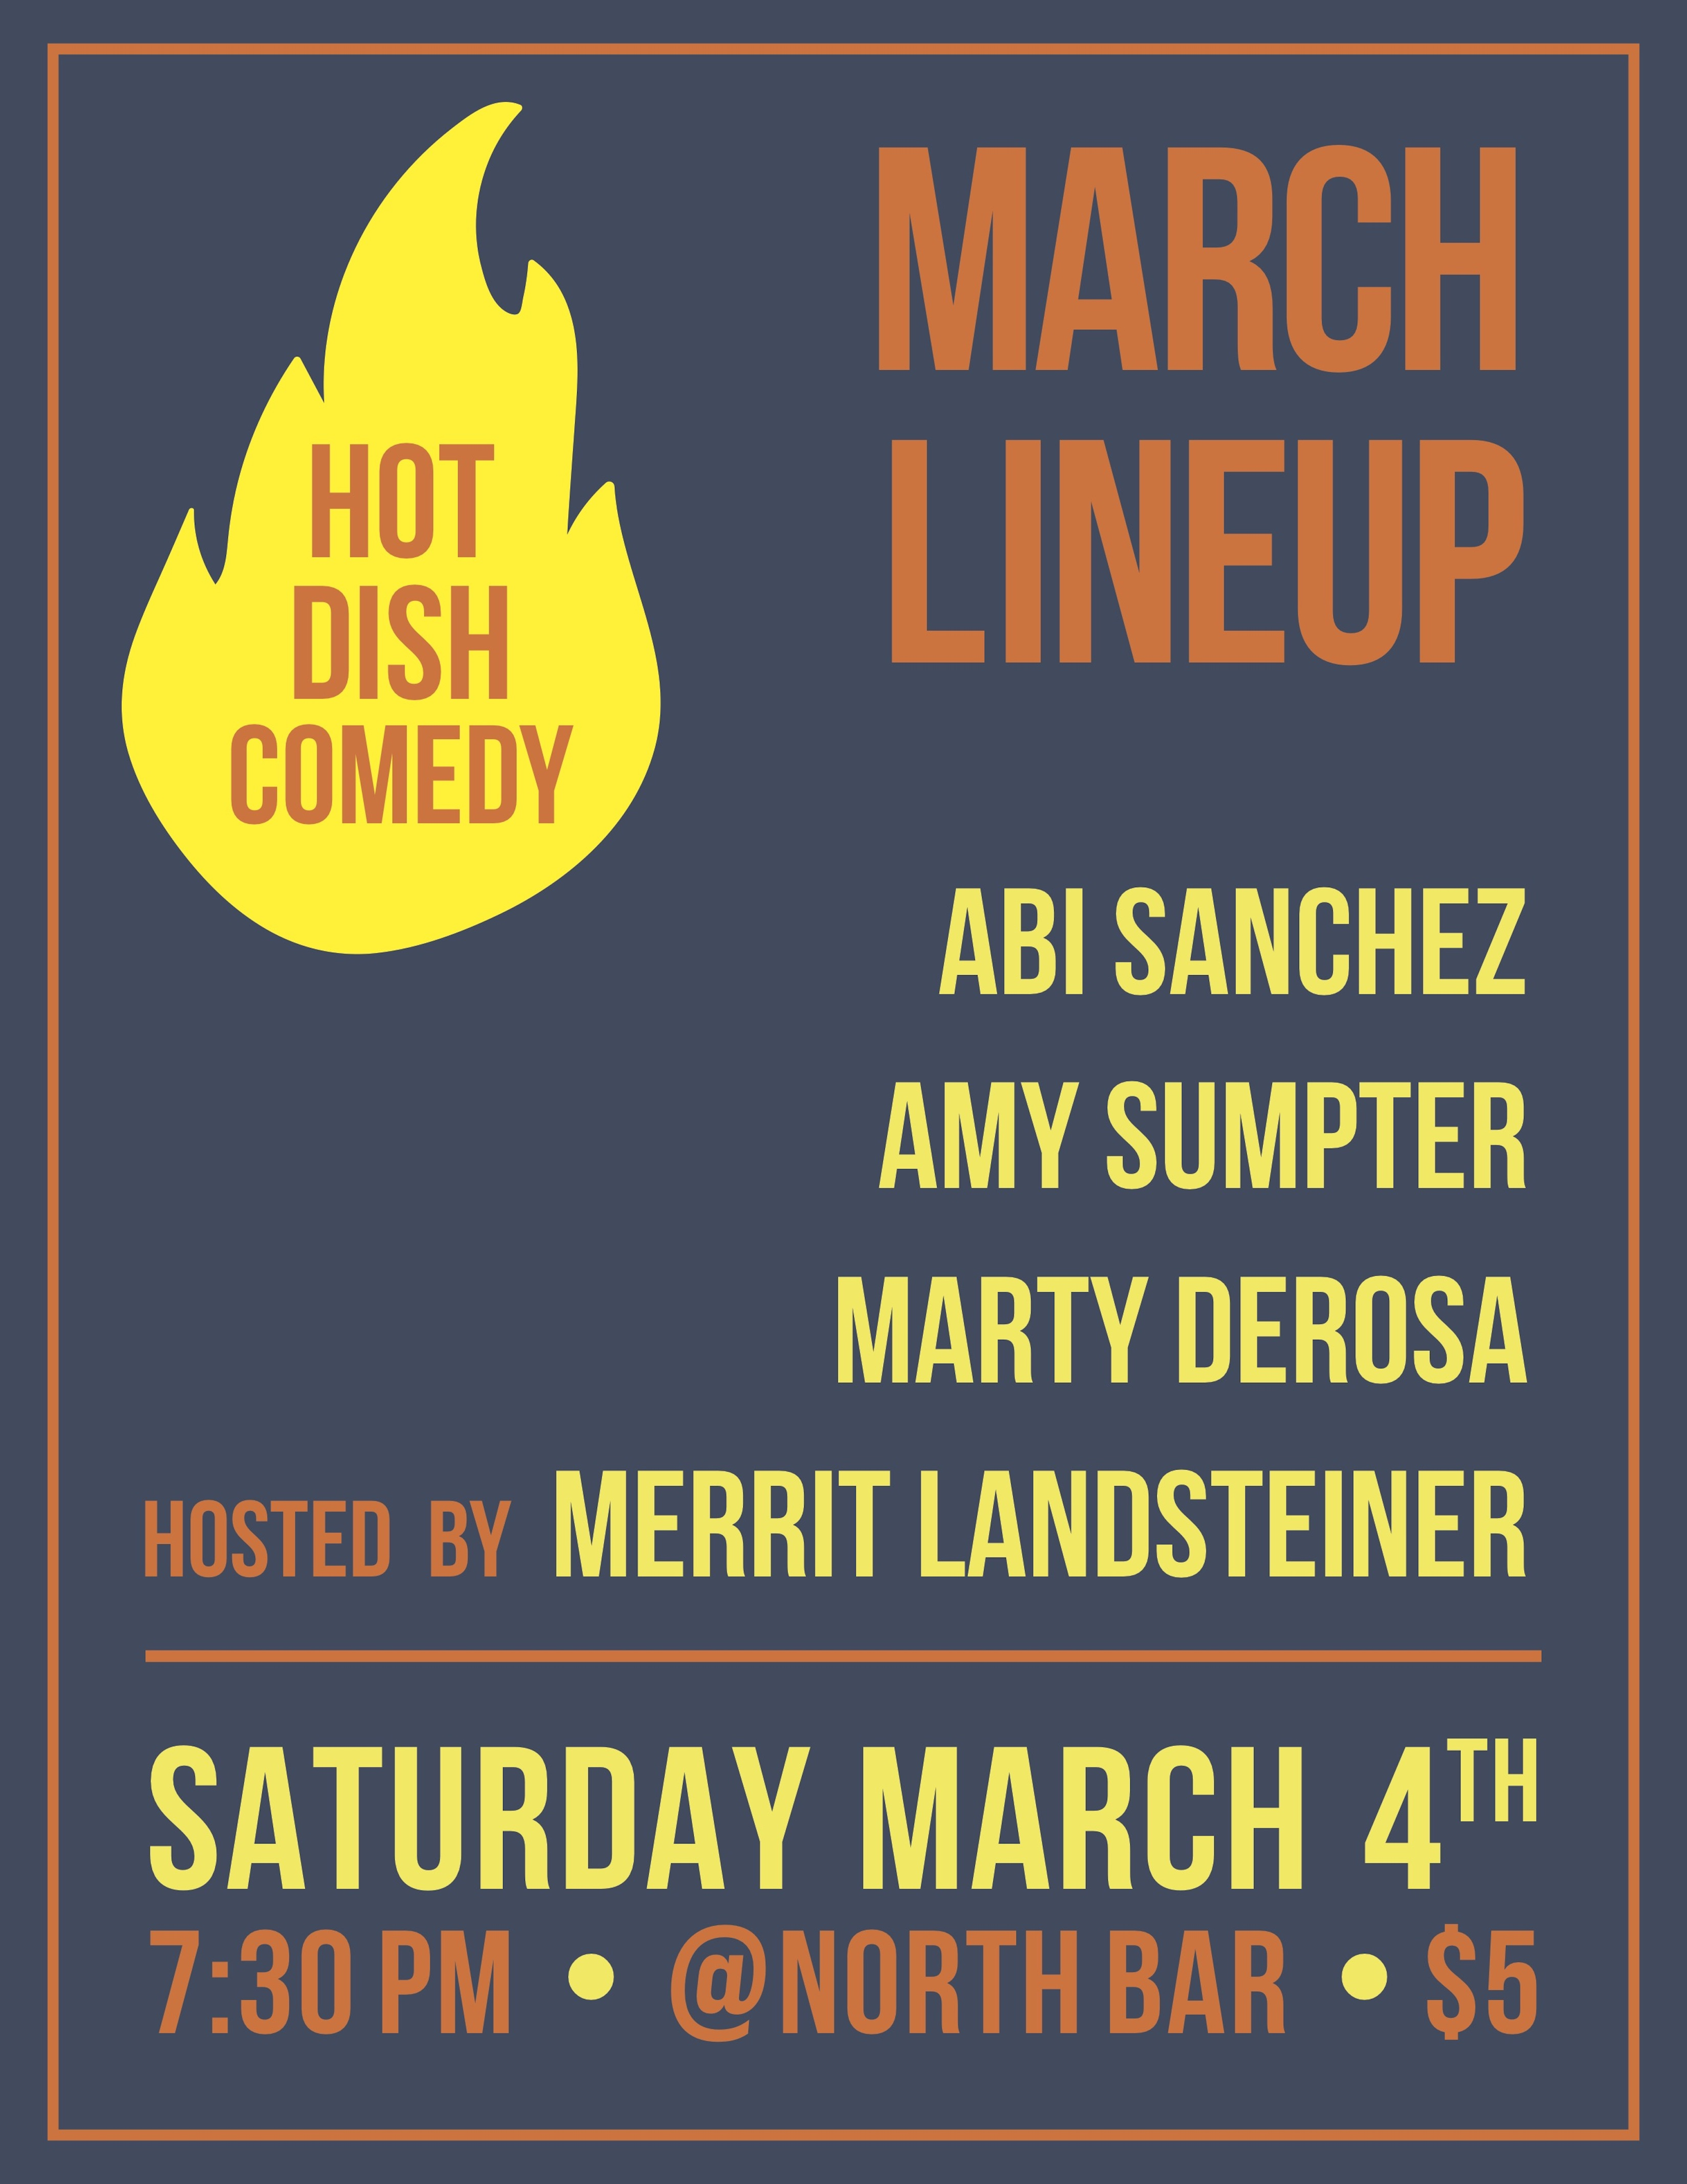 March Line Up